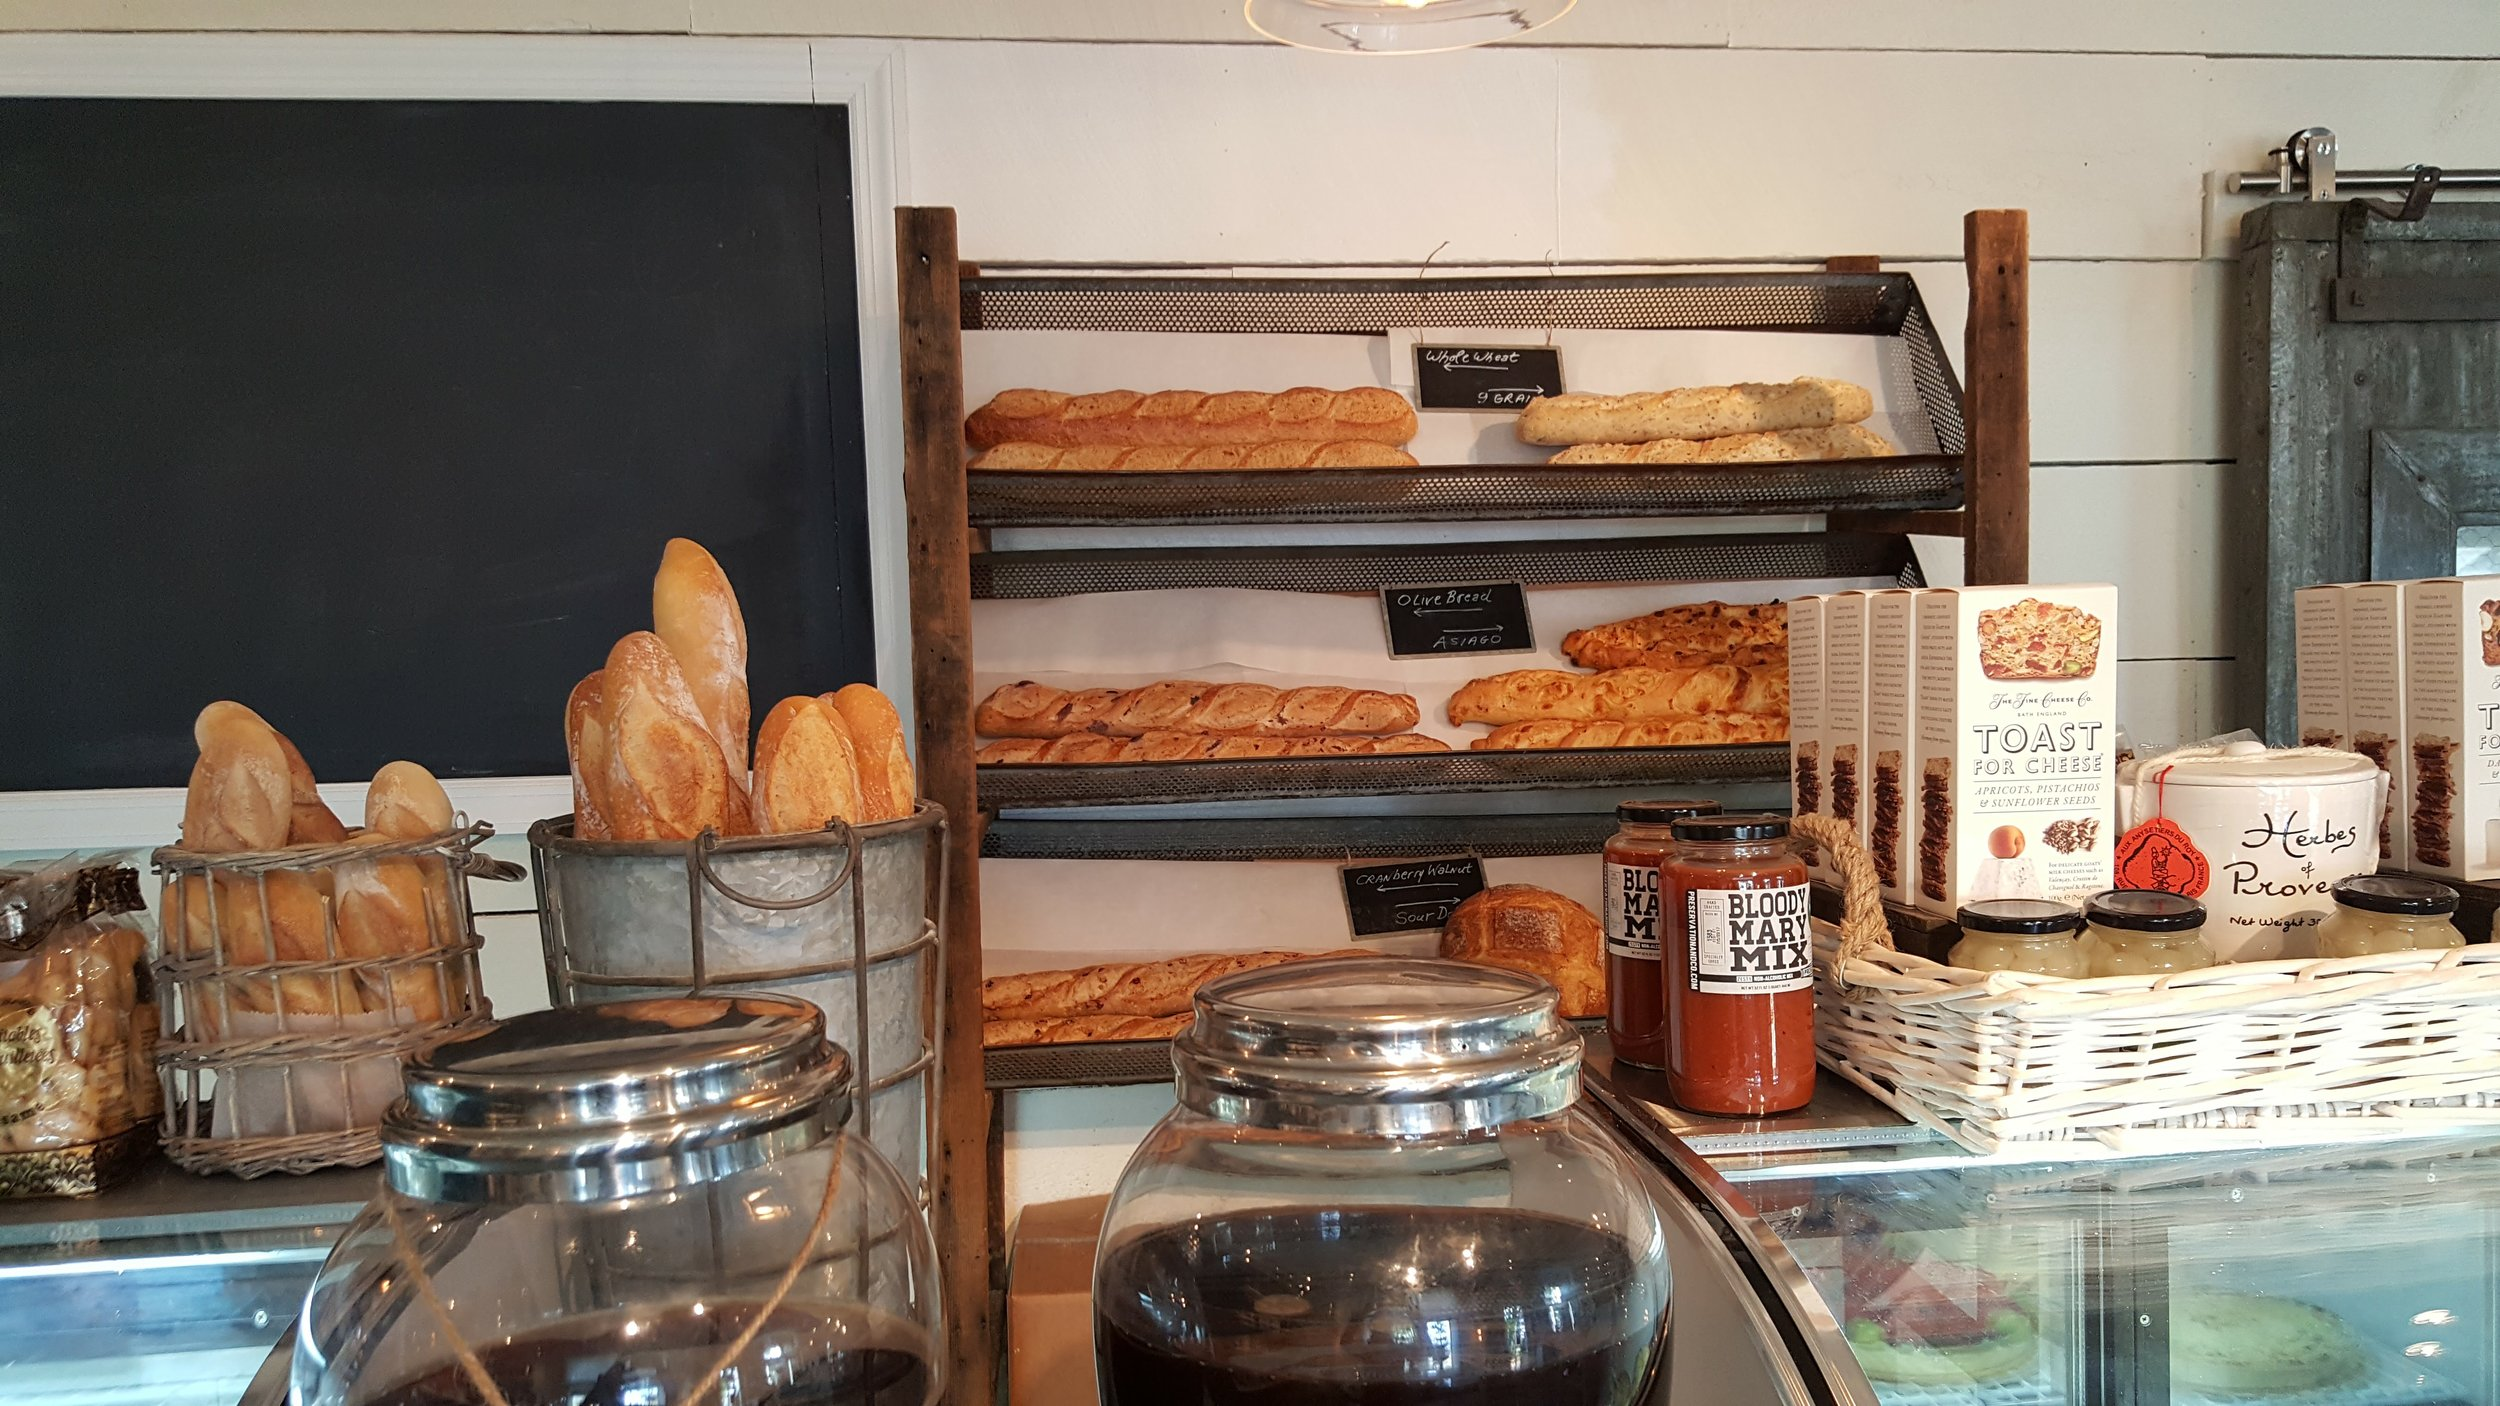 Fresh baked breads line the counters